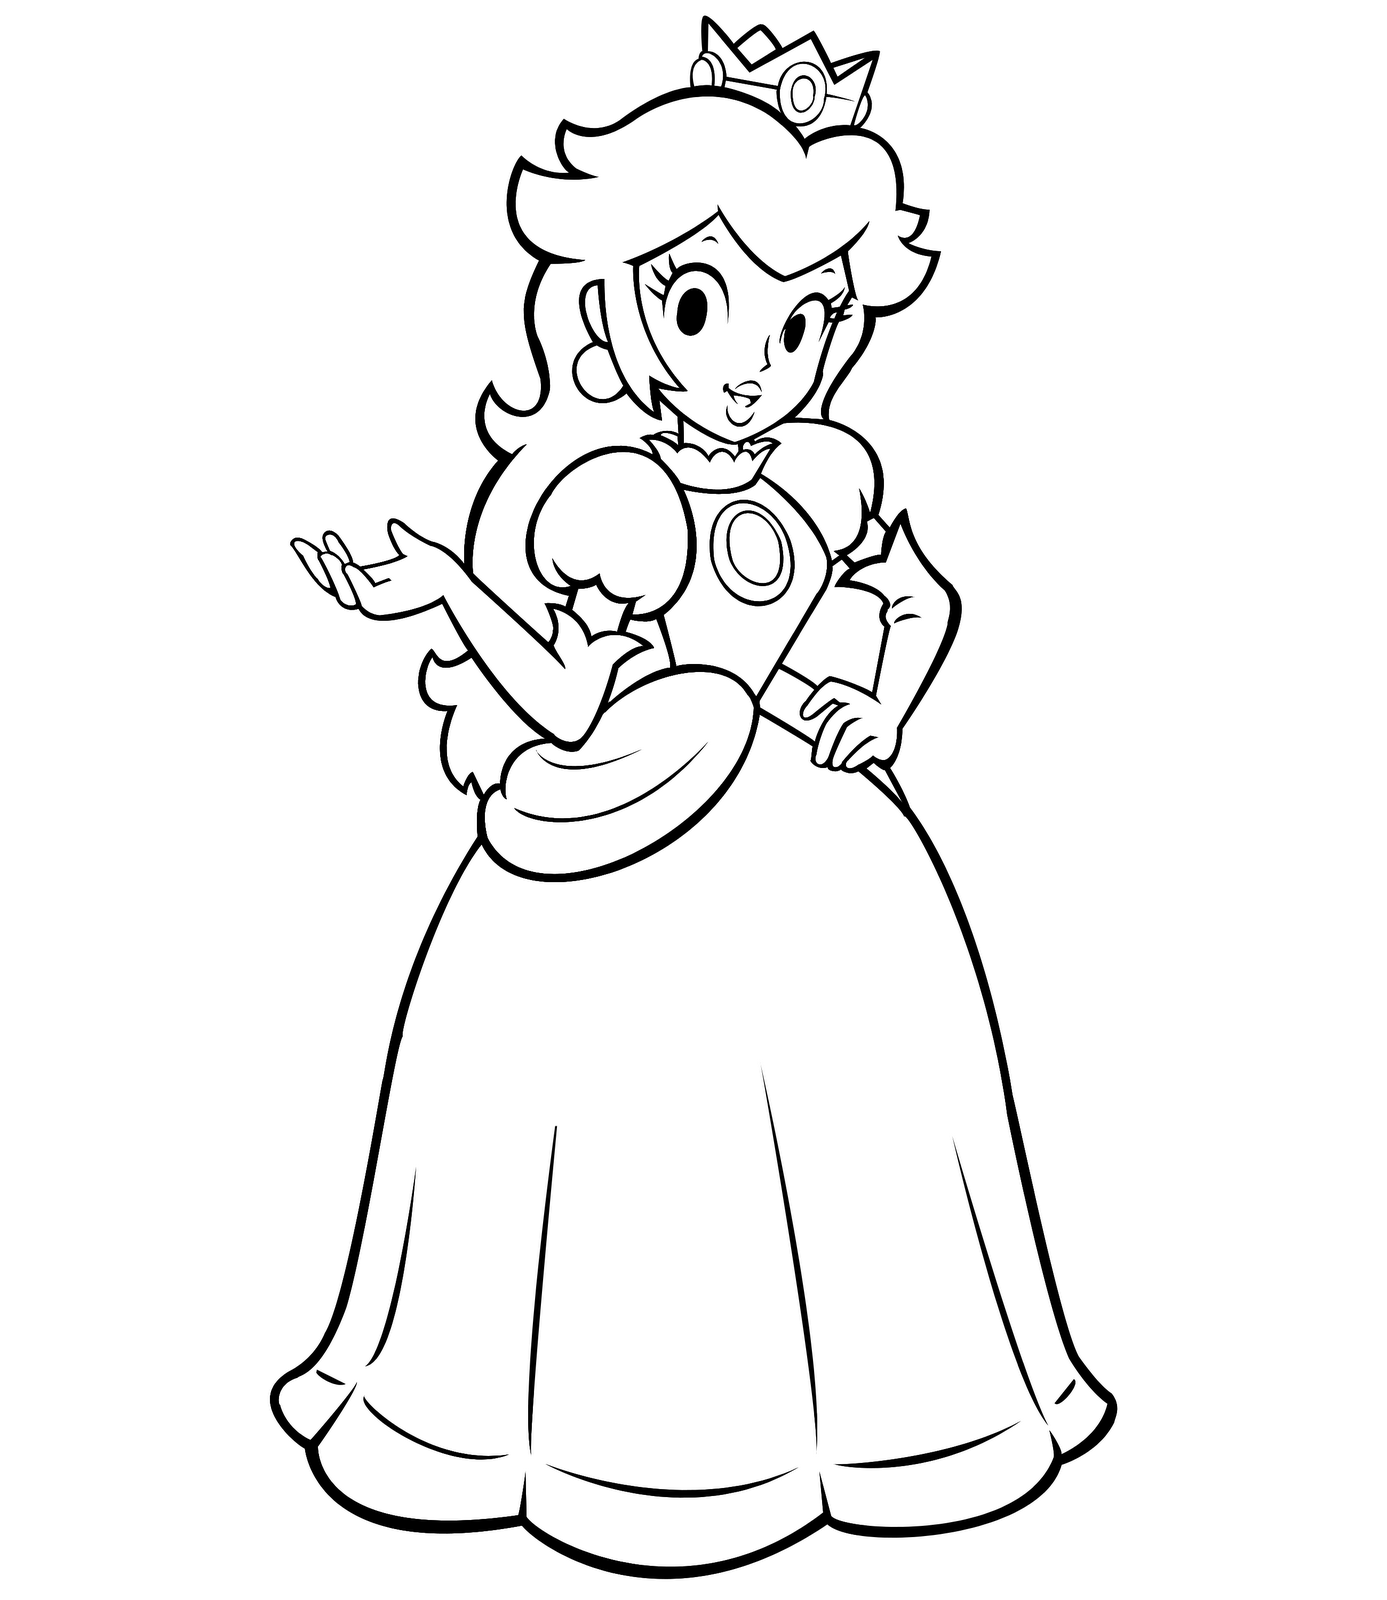 Princess Daisy Coloring Pages To Print